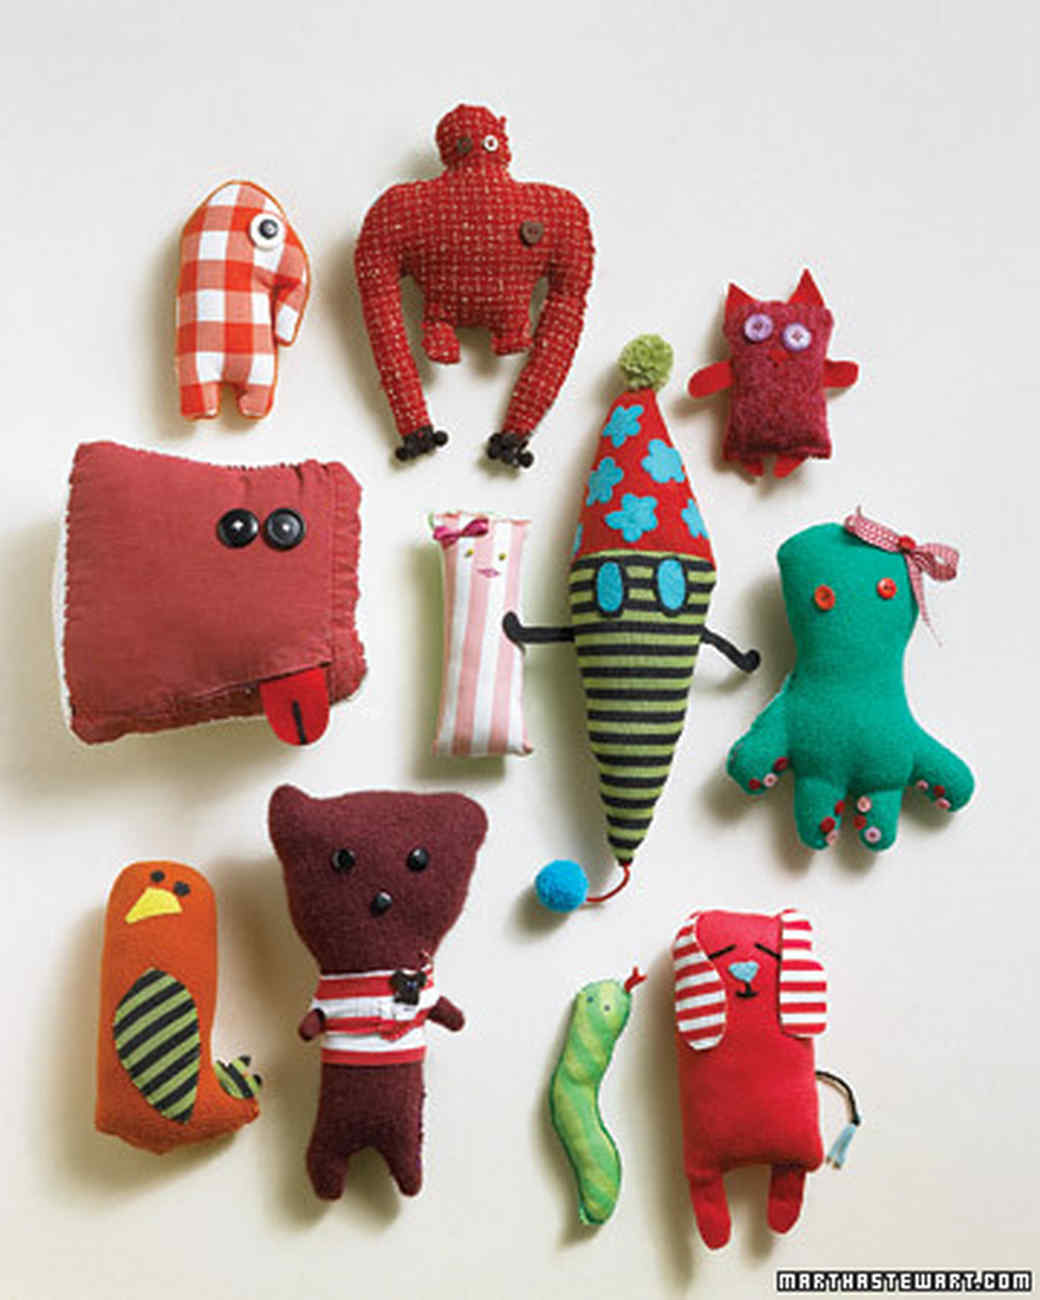 Handmade Christmas Gifts For Kids: Handmade Gifts For Kids